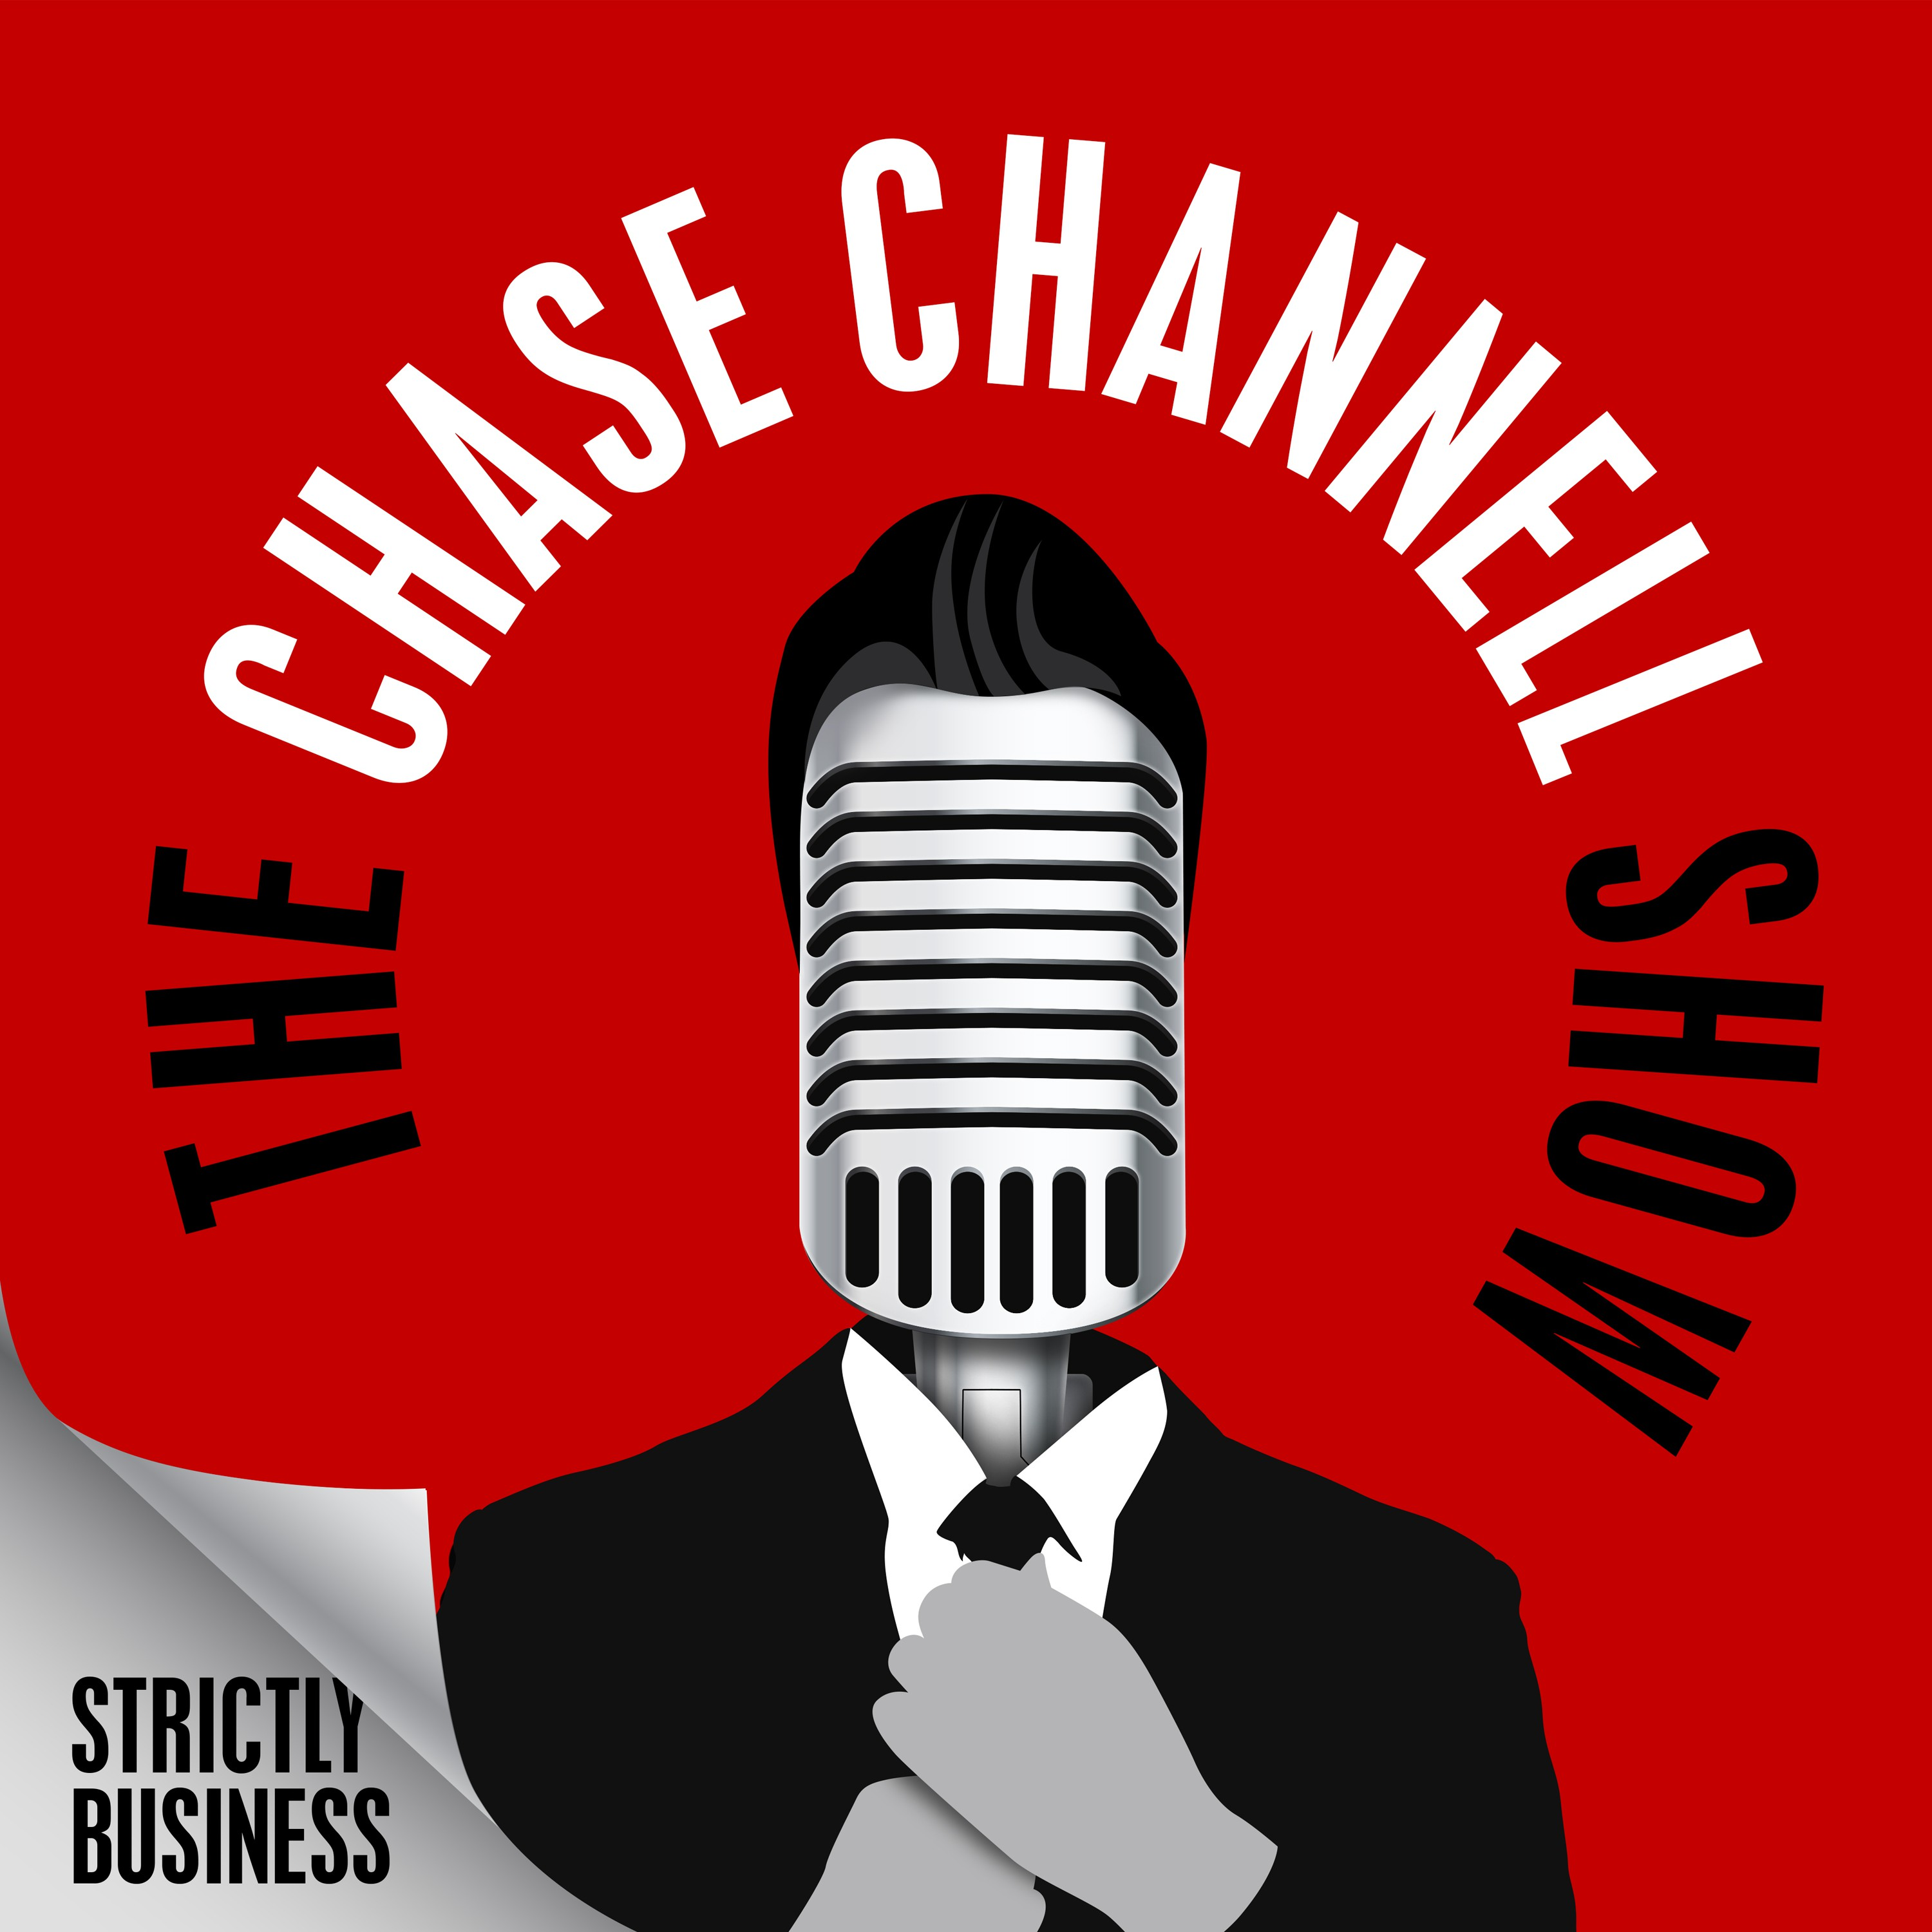 Help me create an eye catching podcast cover!